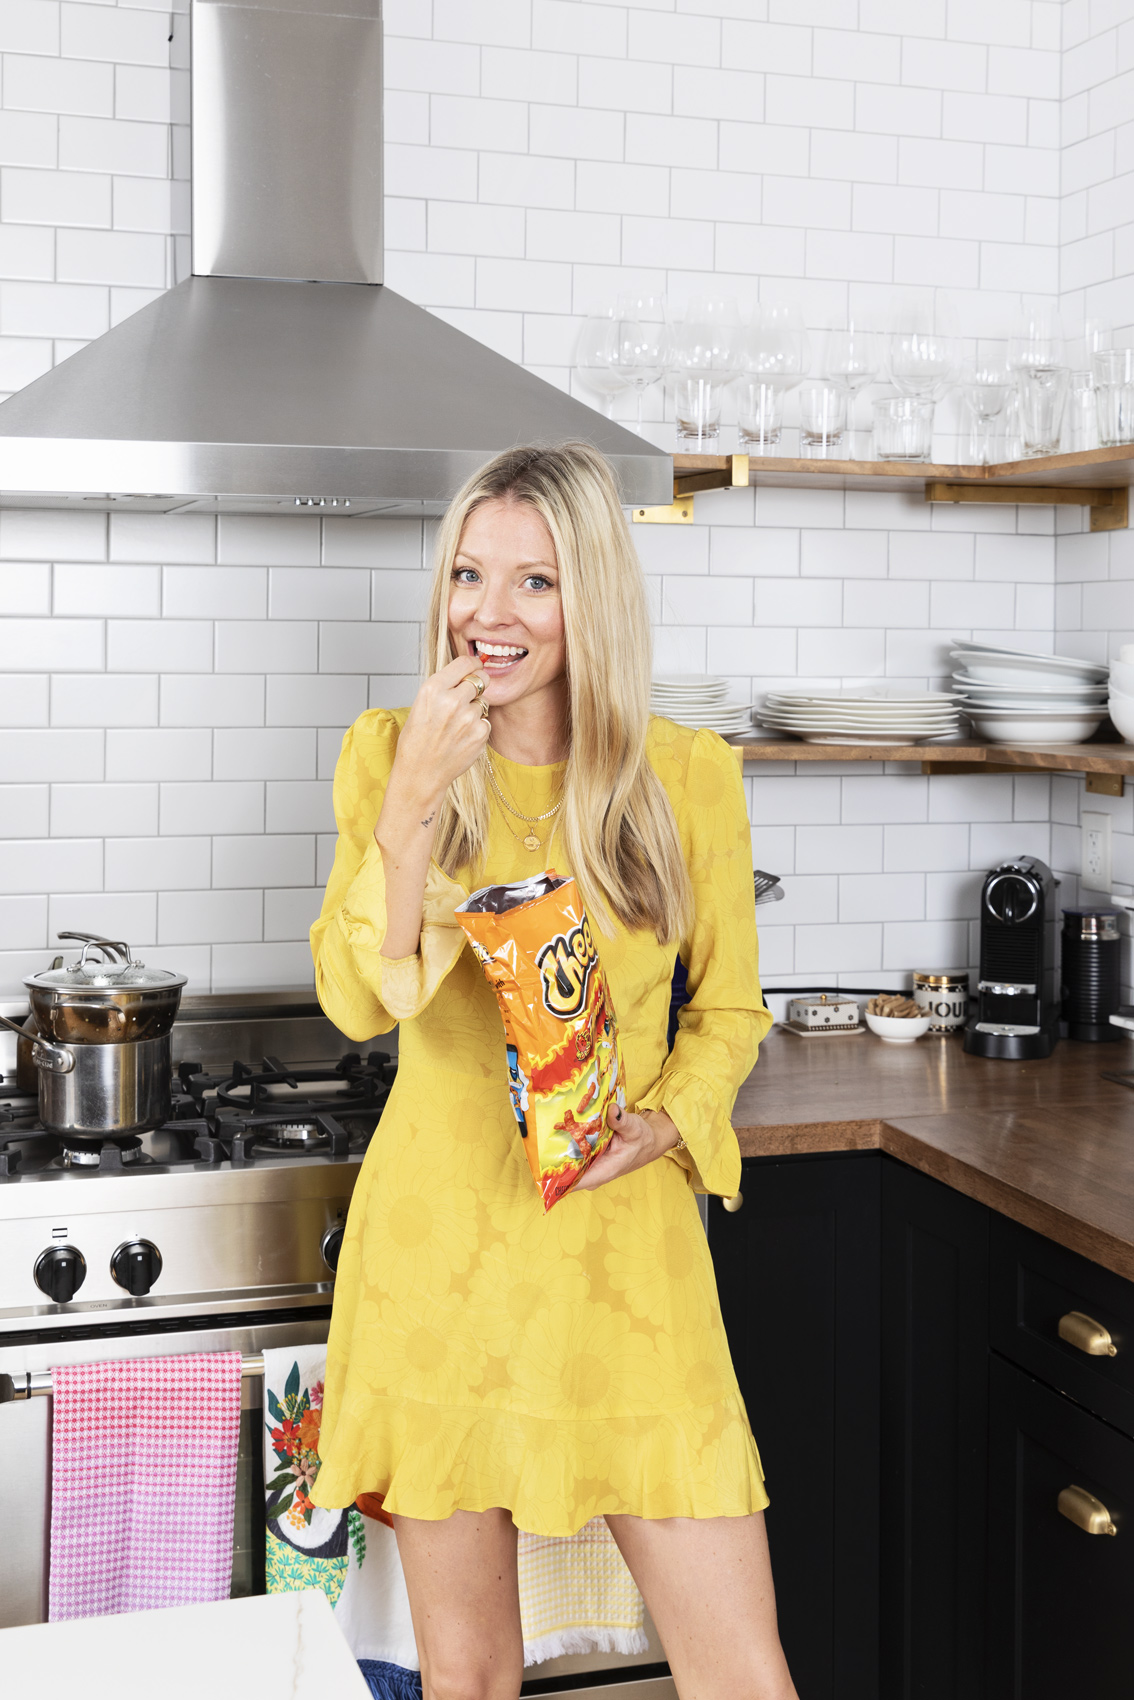 Actress Kaitlyn Doubleday standing in her home kitchen in a yellow dress